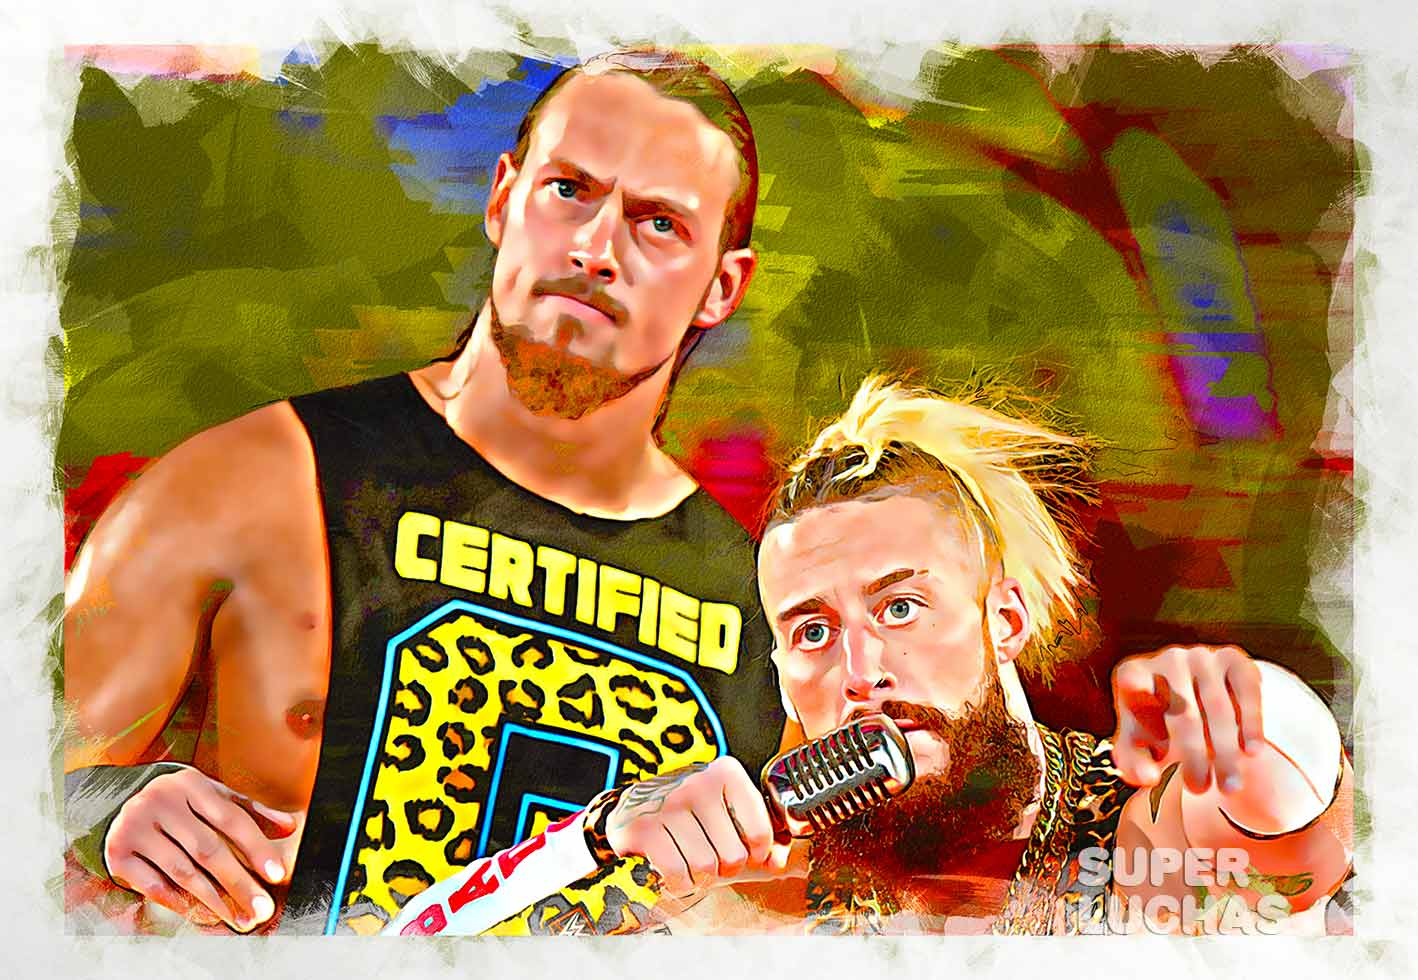 Big Cass Enzo Amore